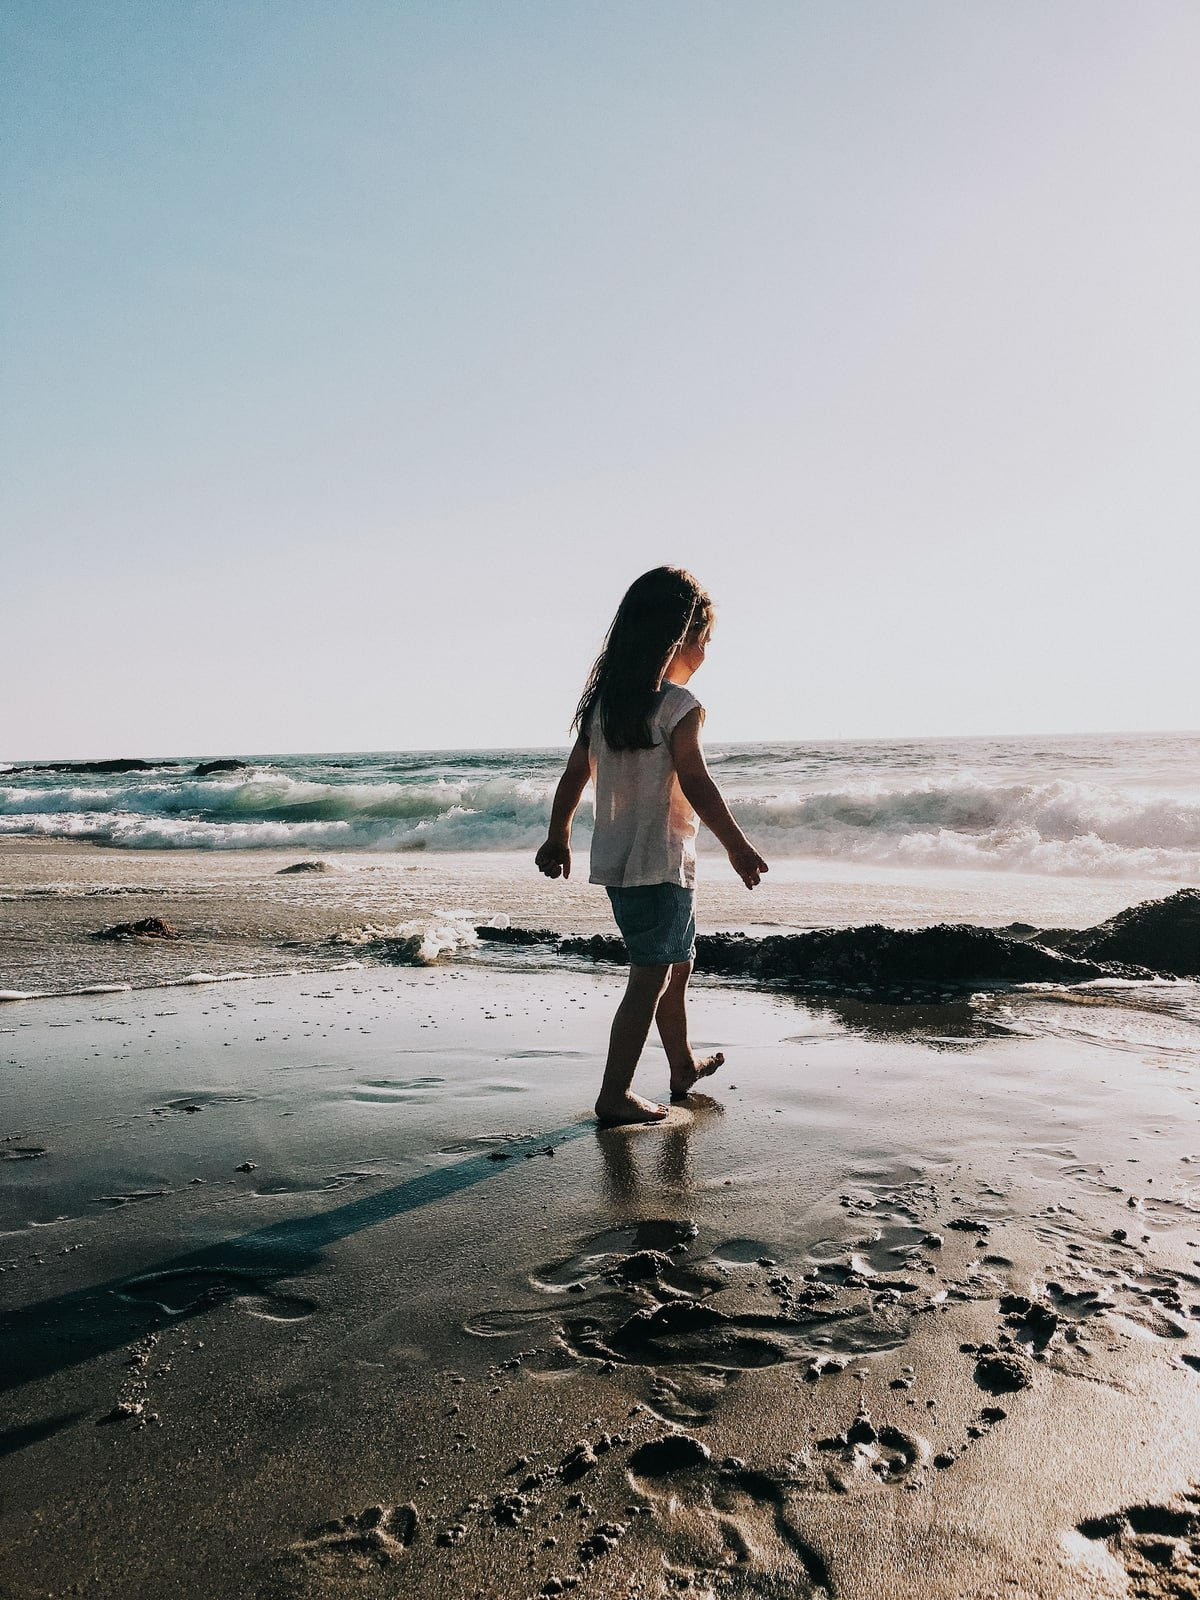 Best things to do beaches in Orange County, from a local mom of 3 sharing all the HIDDEN SECRET SPOTS!